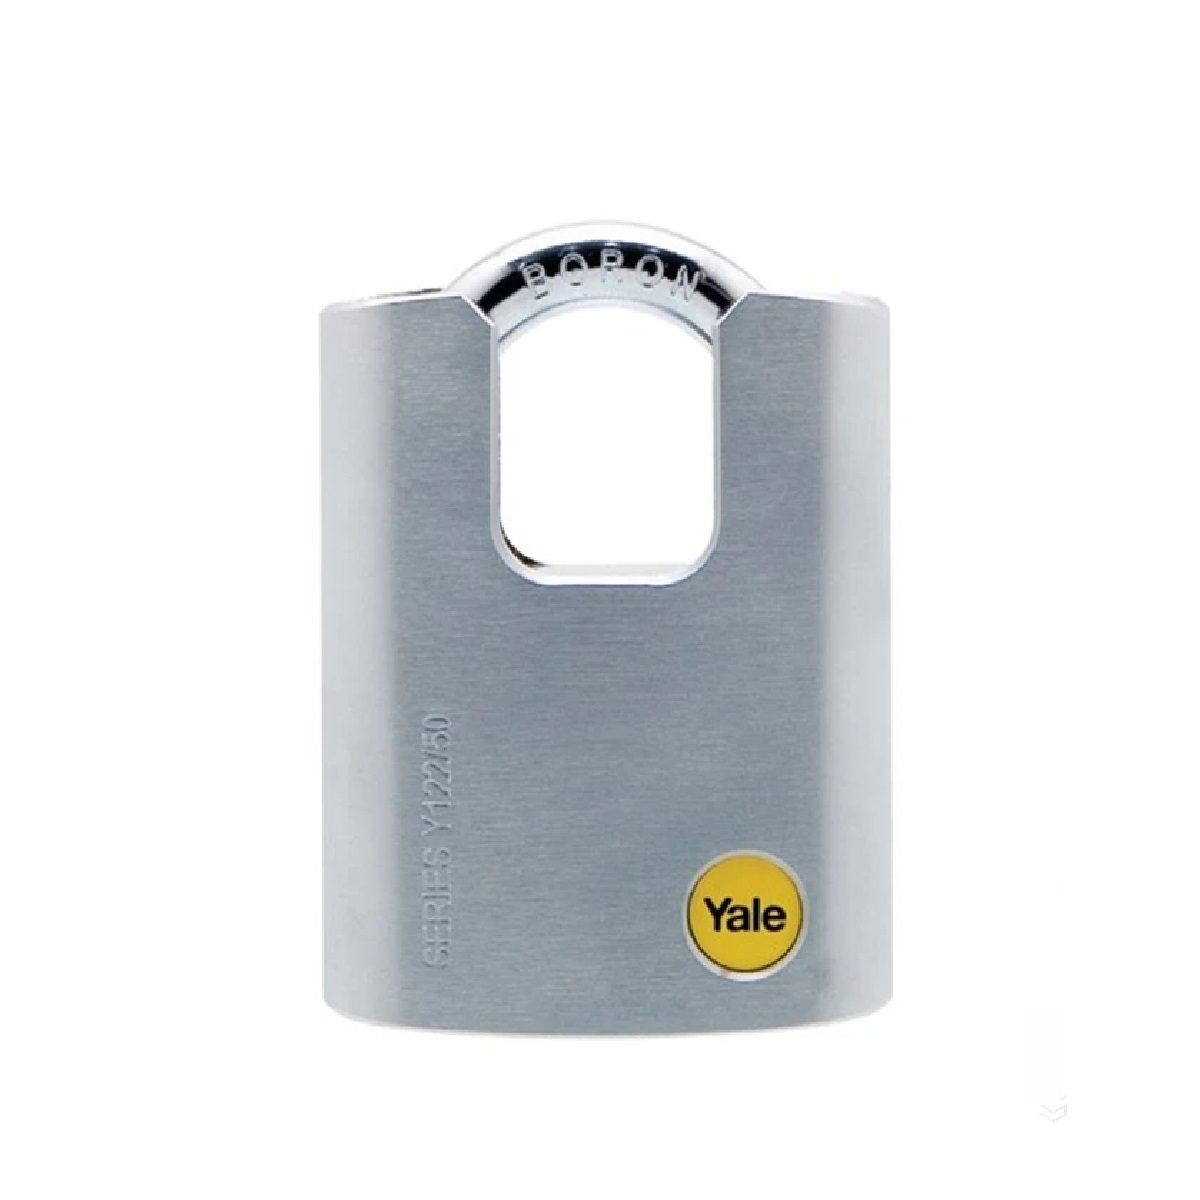 Yale Y122/50/123/1 VP 50MM Closed Shackle Padlock Comes With 3 Keys